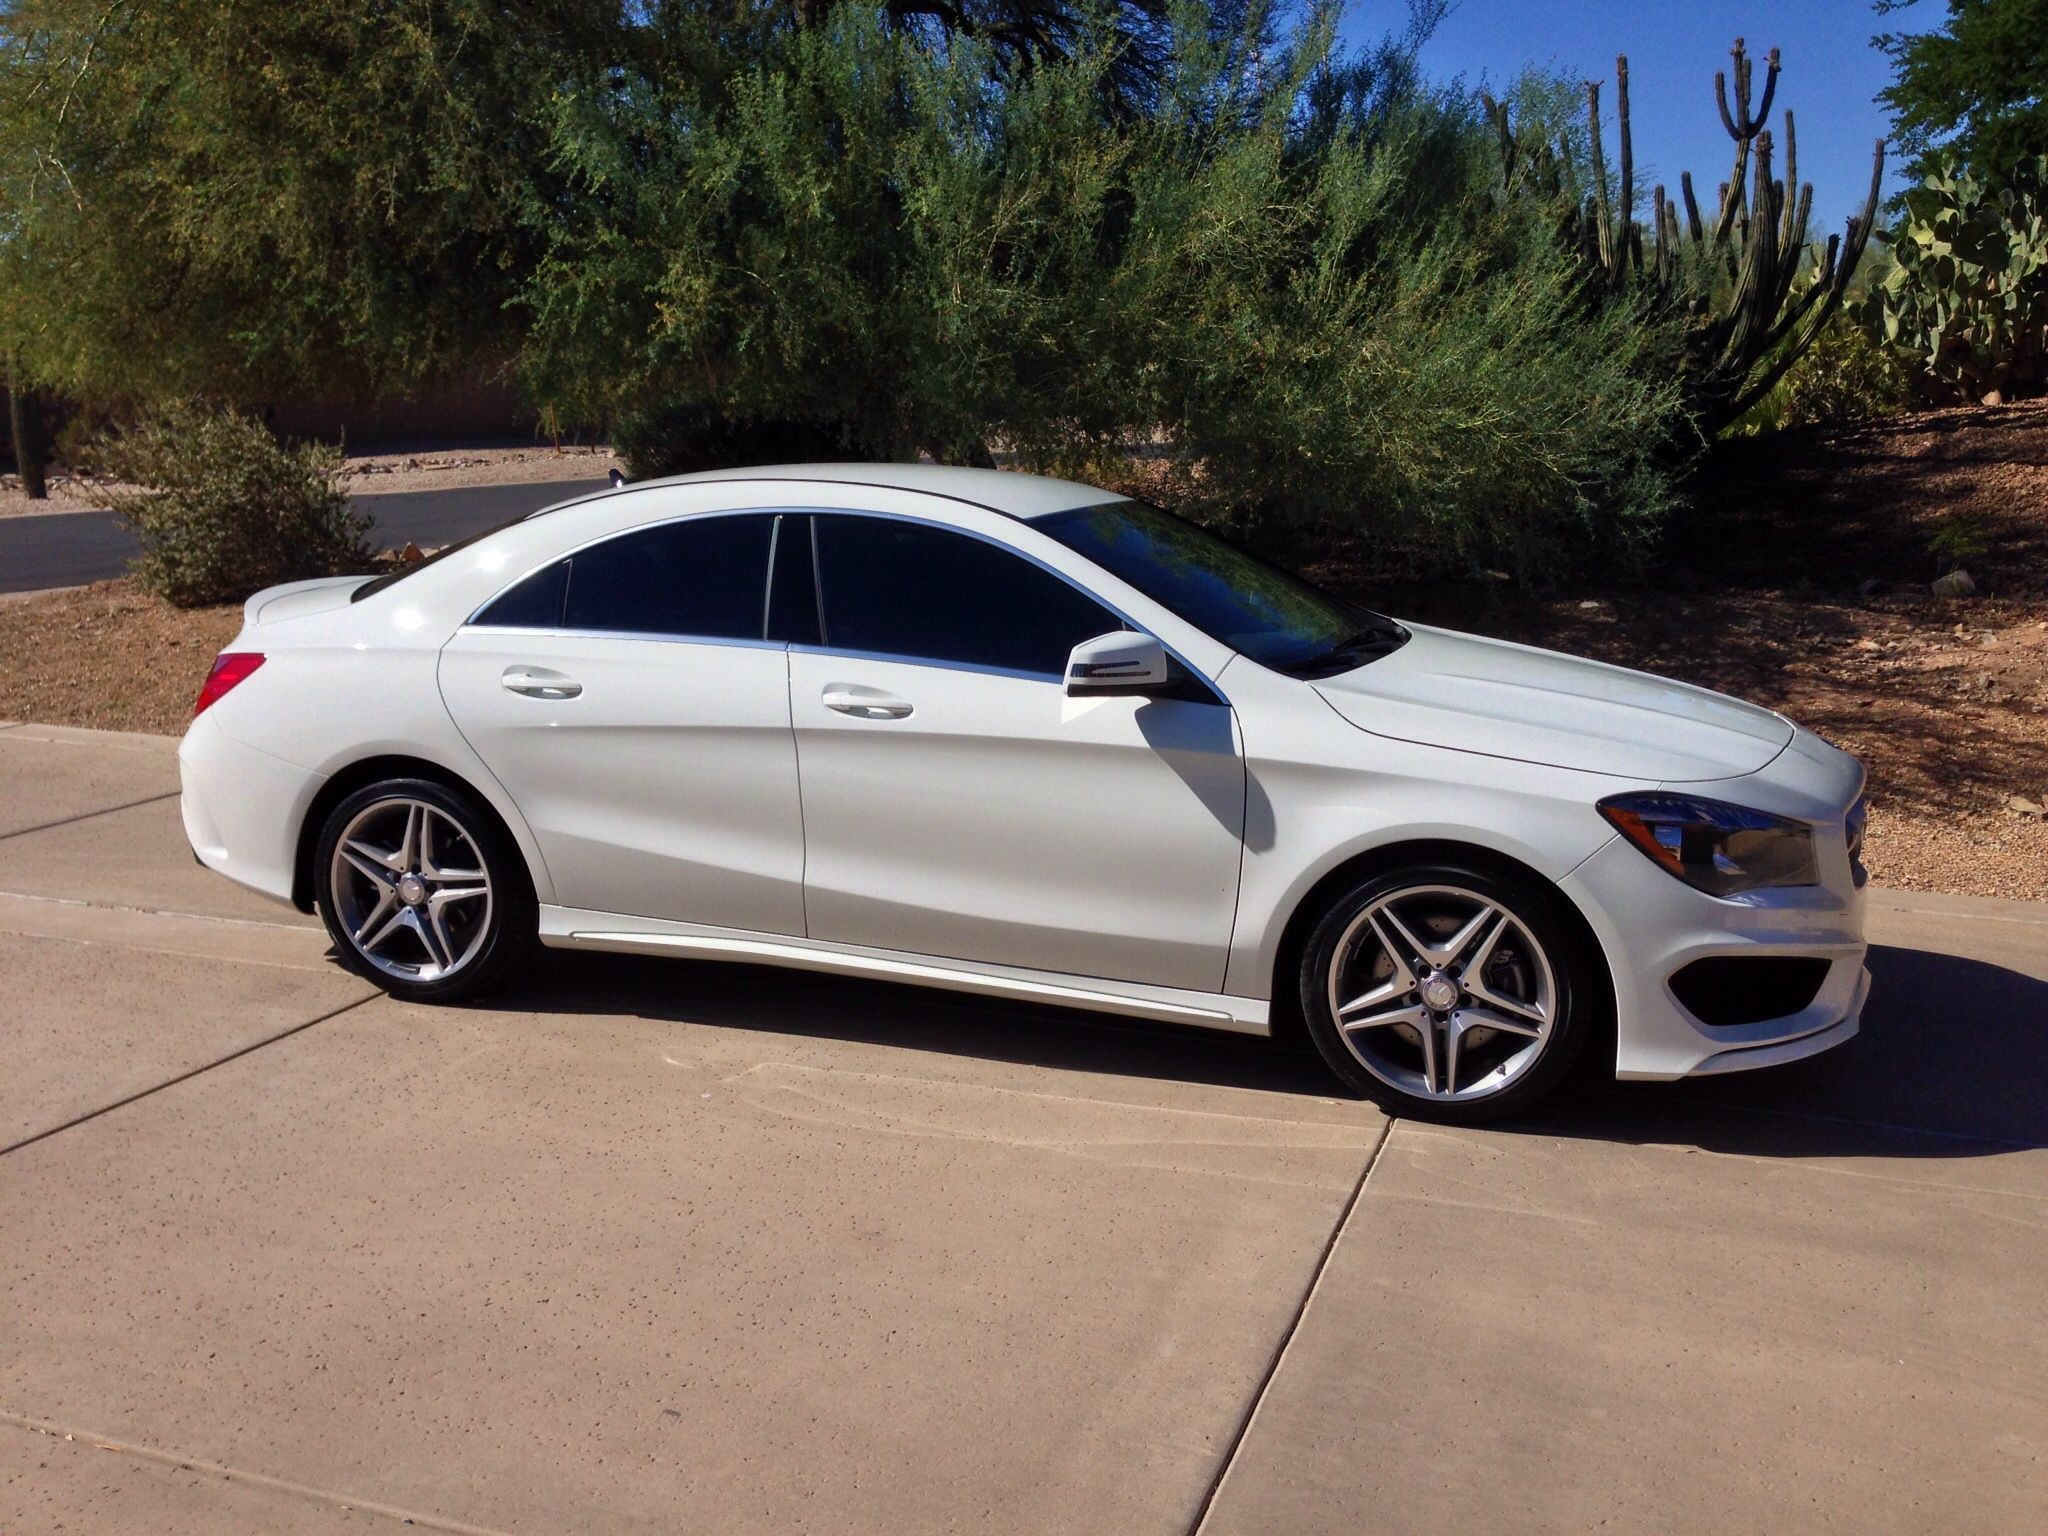 Mercedes cla 250 white google search vroom vroom for Google mercedes benz